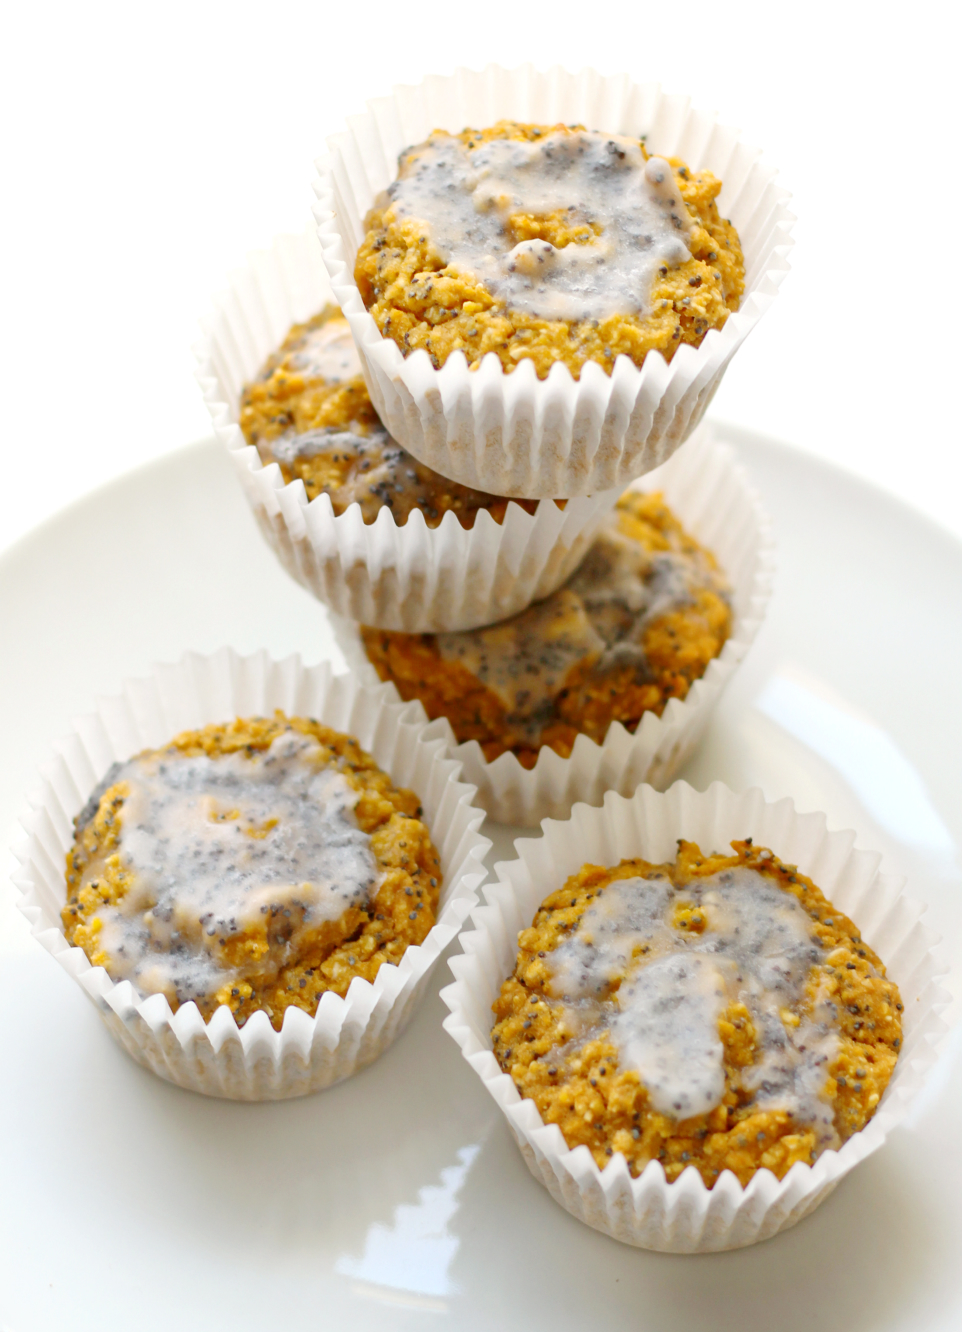 Lively Lemon Poppy Seed Muffins | Strength and Sunshine @RebeccaGF666 It's always springtime with these vibrant, healthy, lively lemon poppy seed muffins! A fun, veggie-packed, gluten-free, vegan breakfast or snack recipe that will leave you feeling happy and bright!